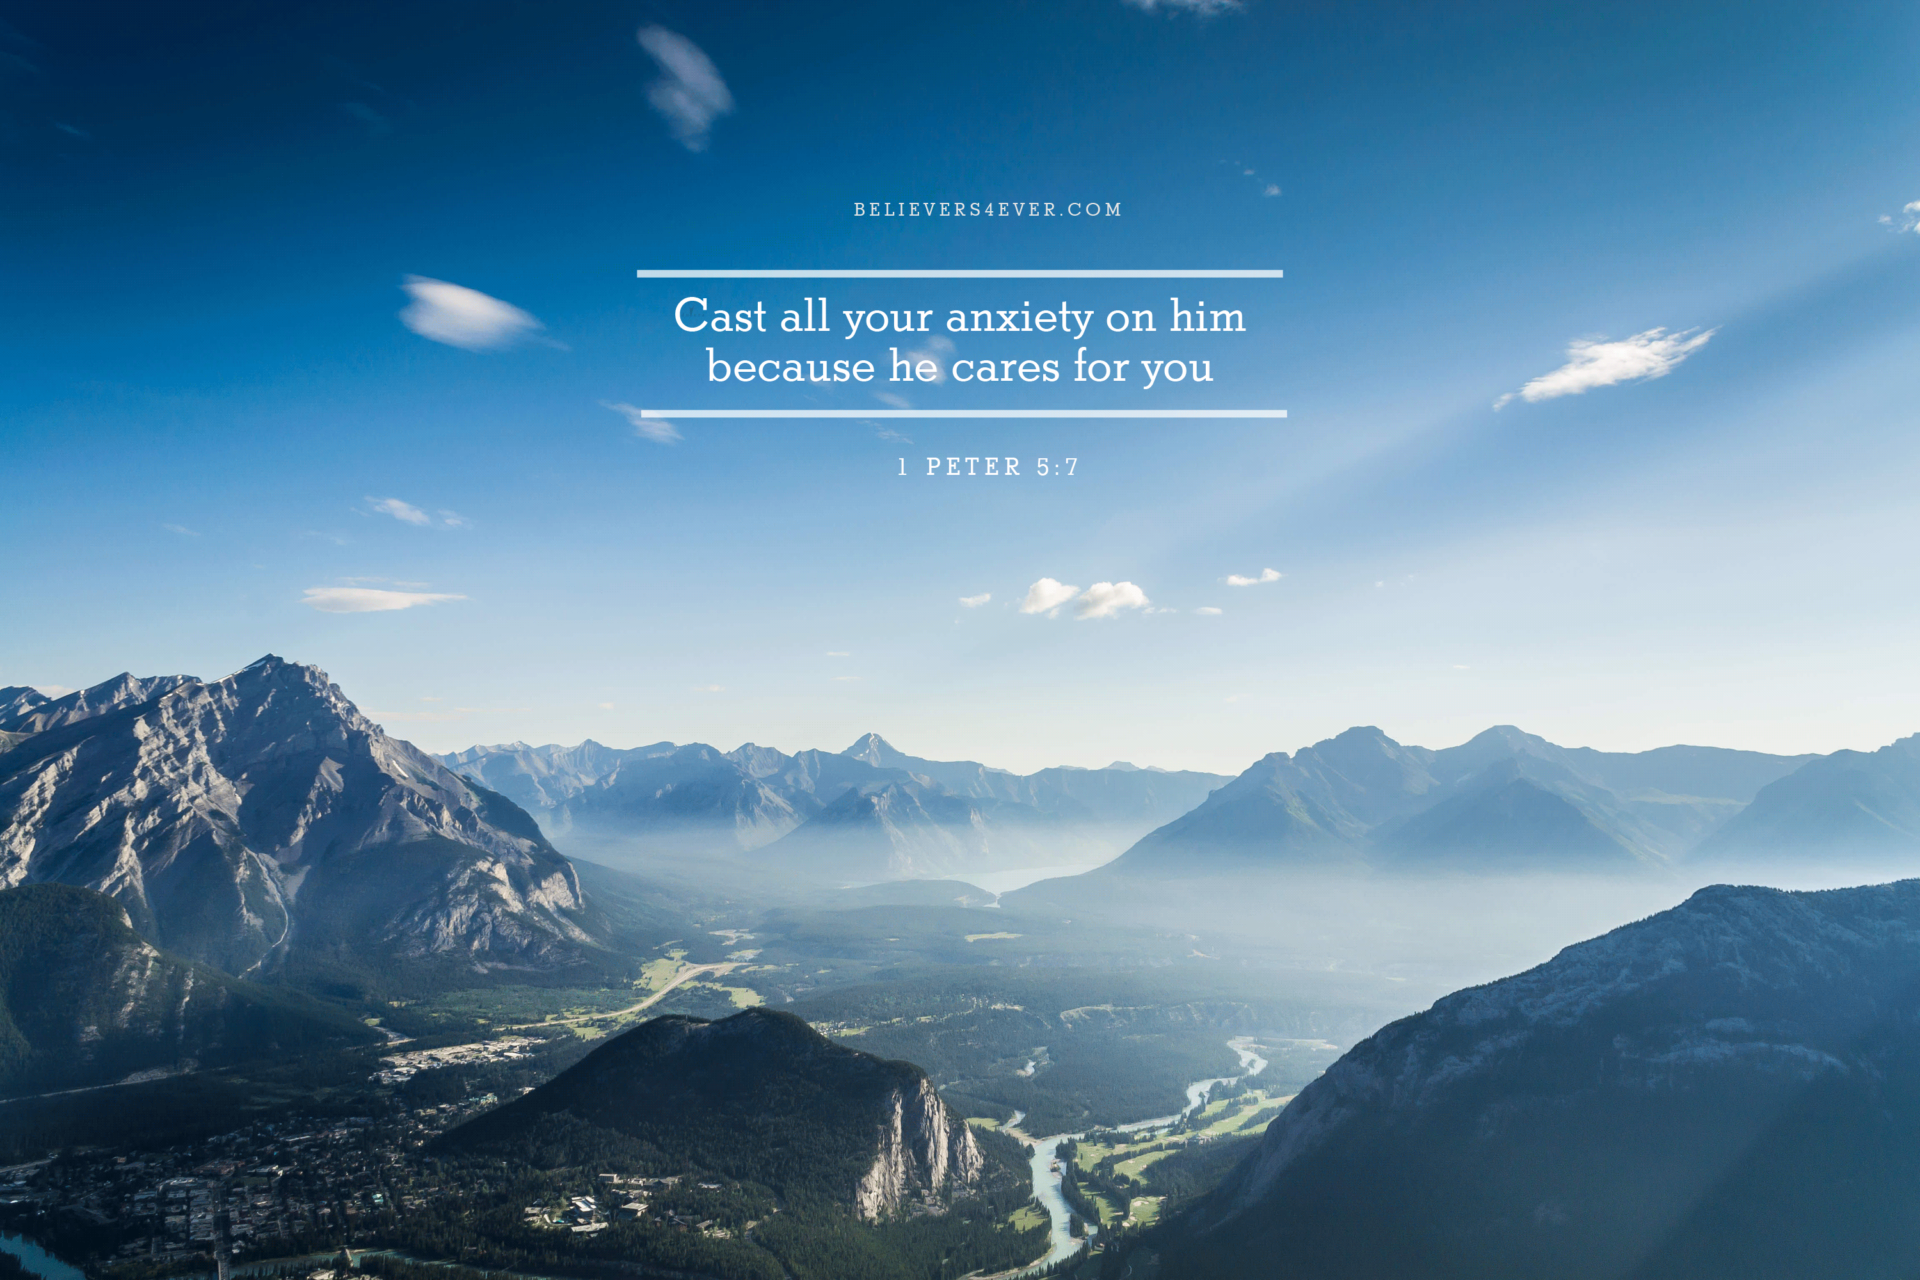 Cast All Your Anxiety On Him Christian Wallpaper Hd   Desktop 1920x1280